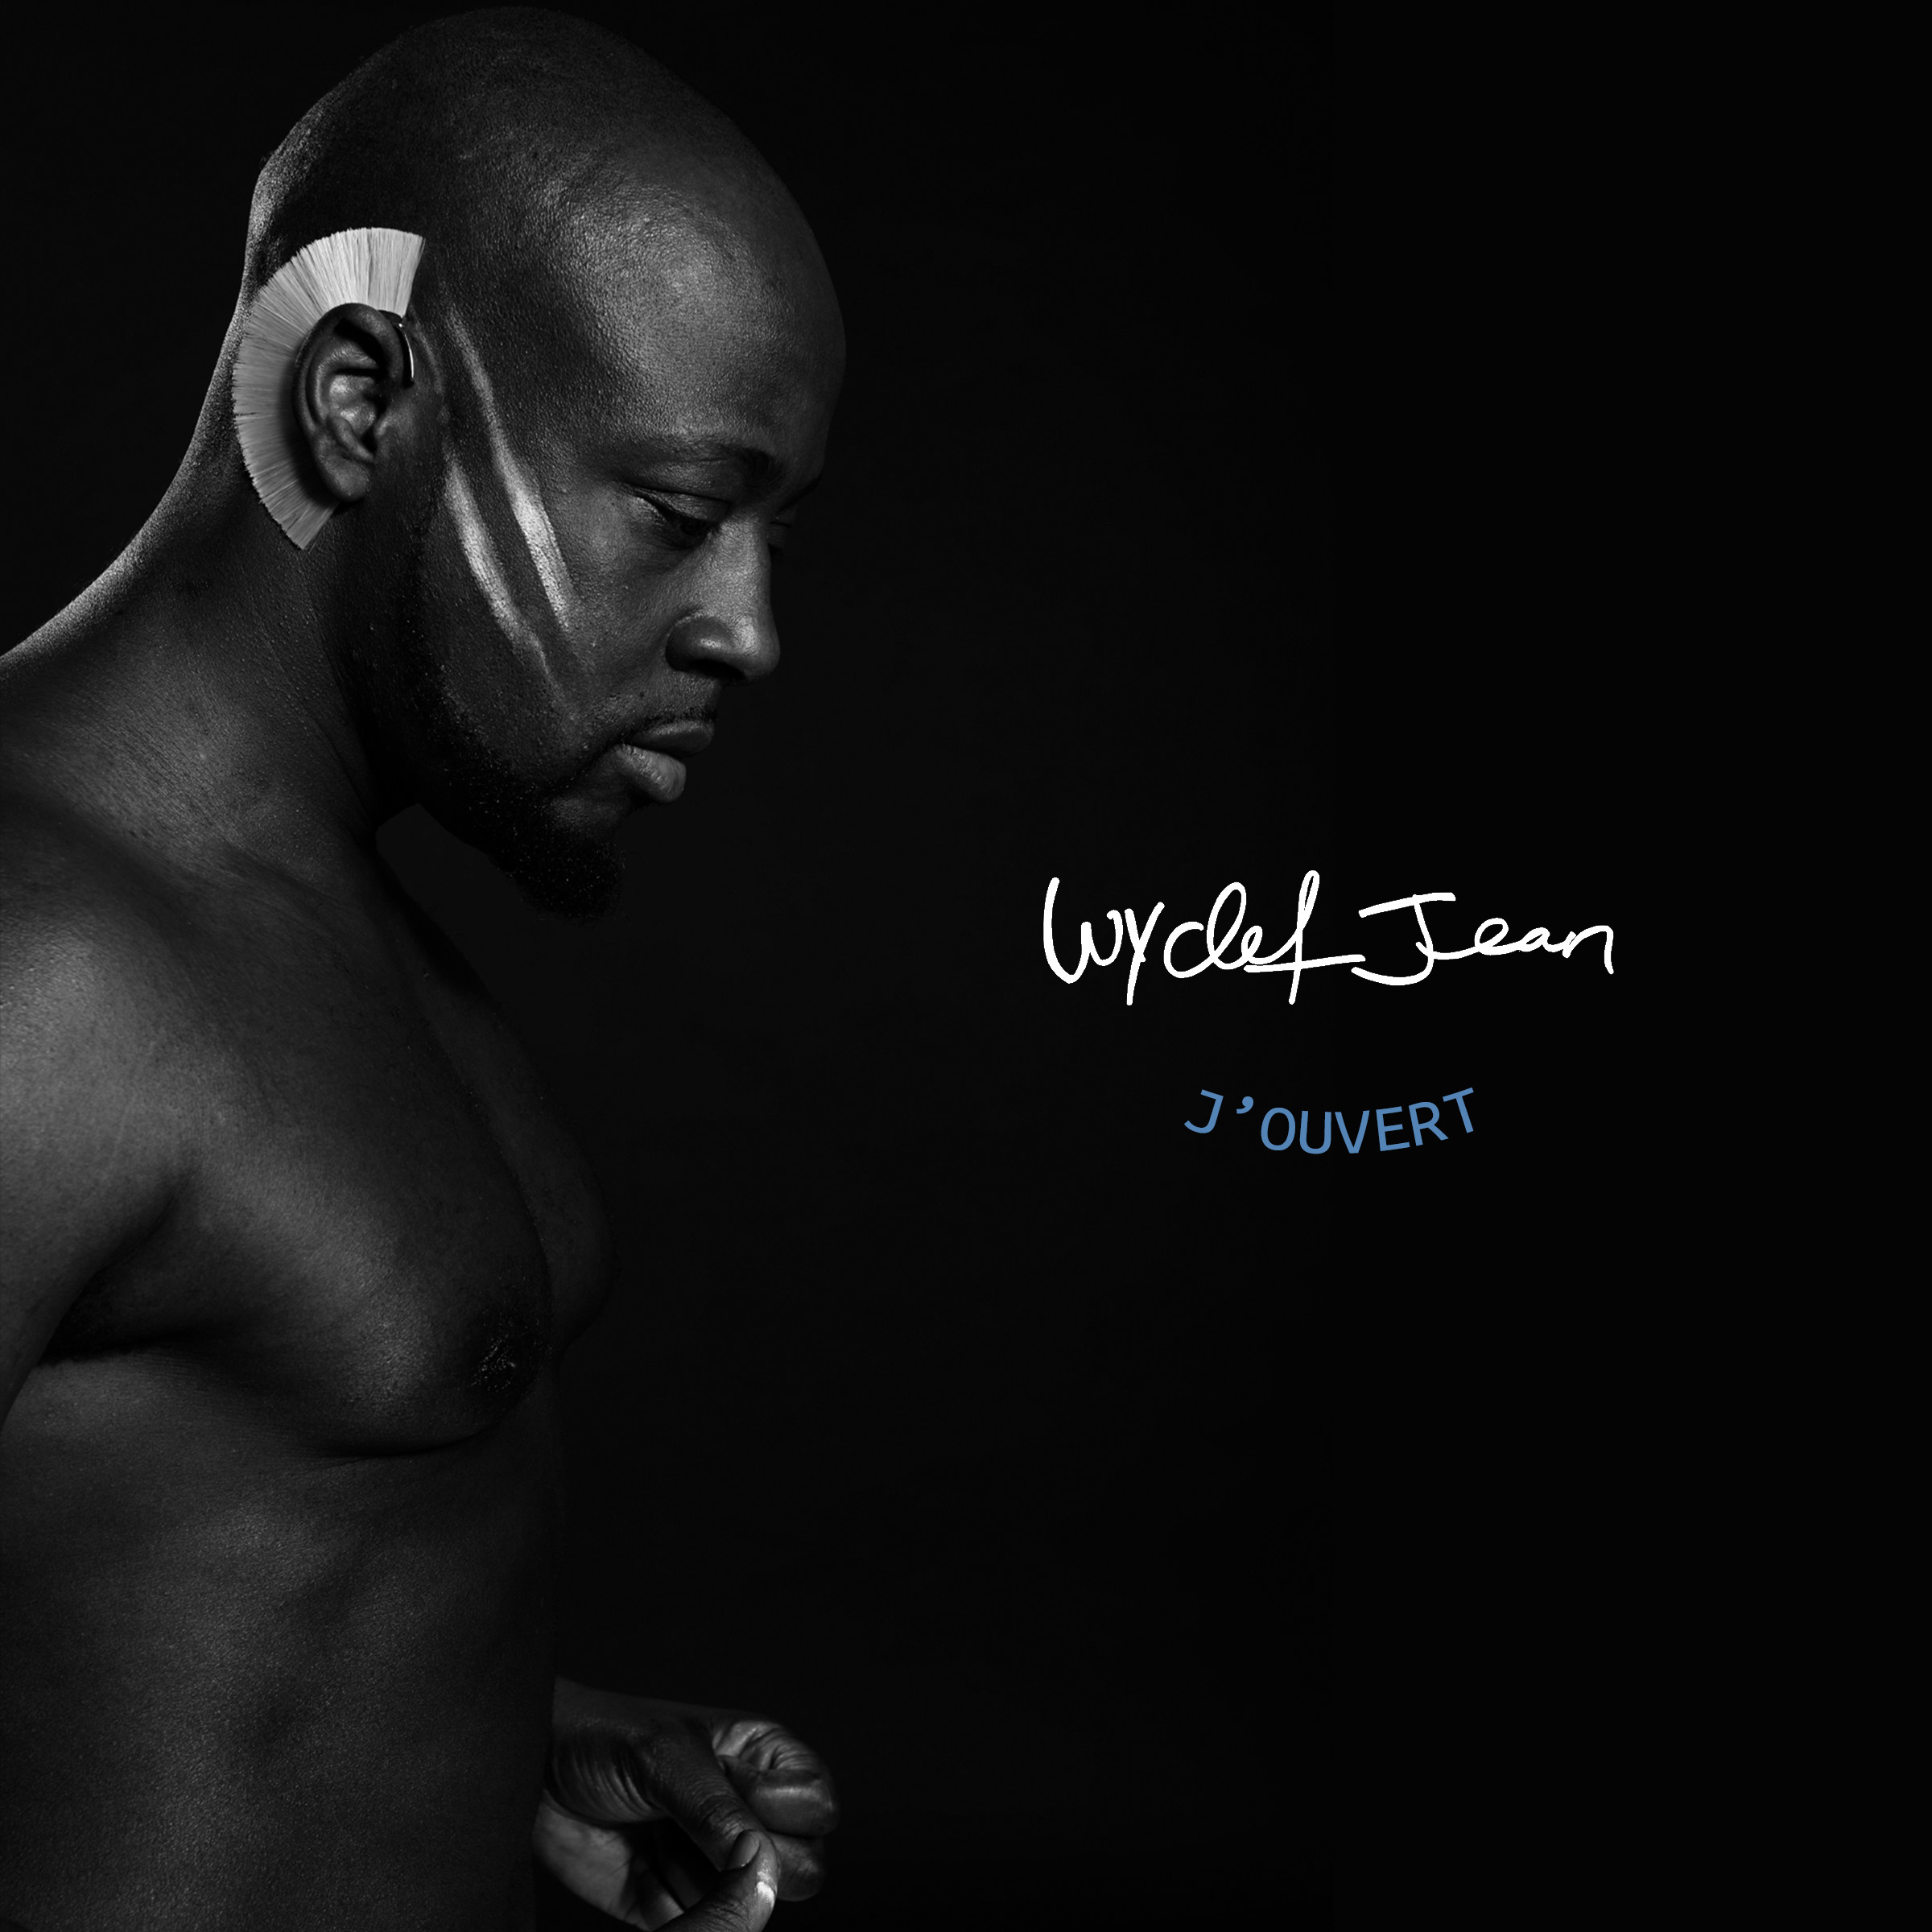 wyclef-jouvert-cover